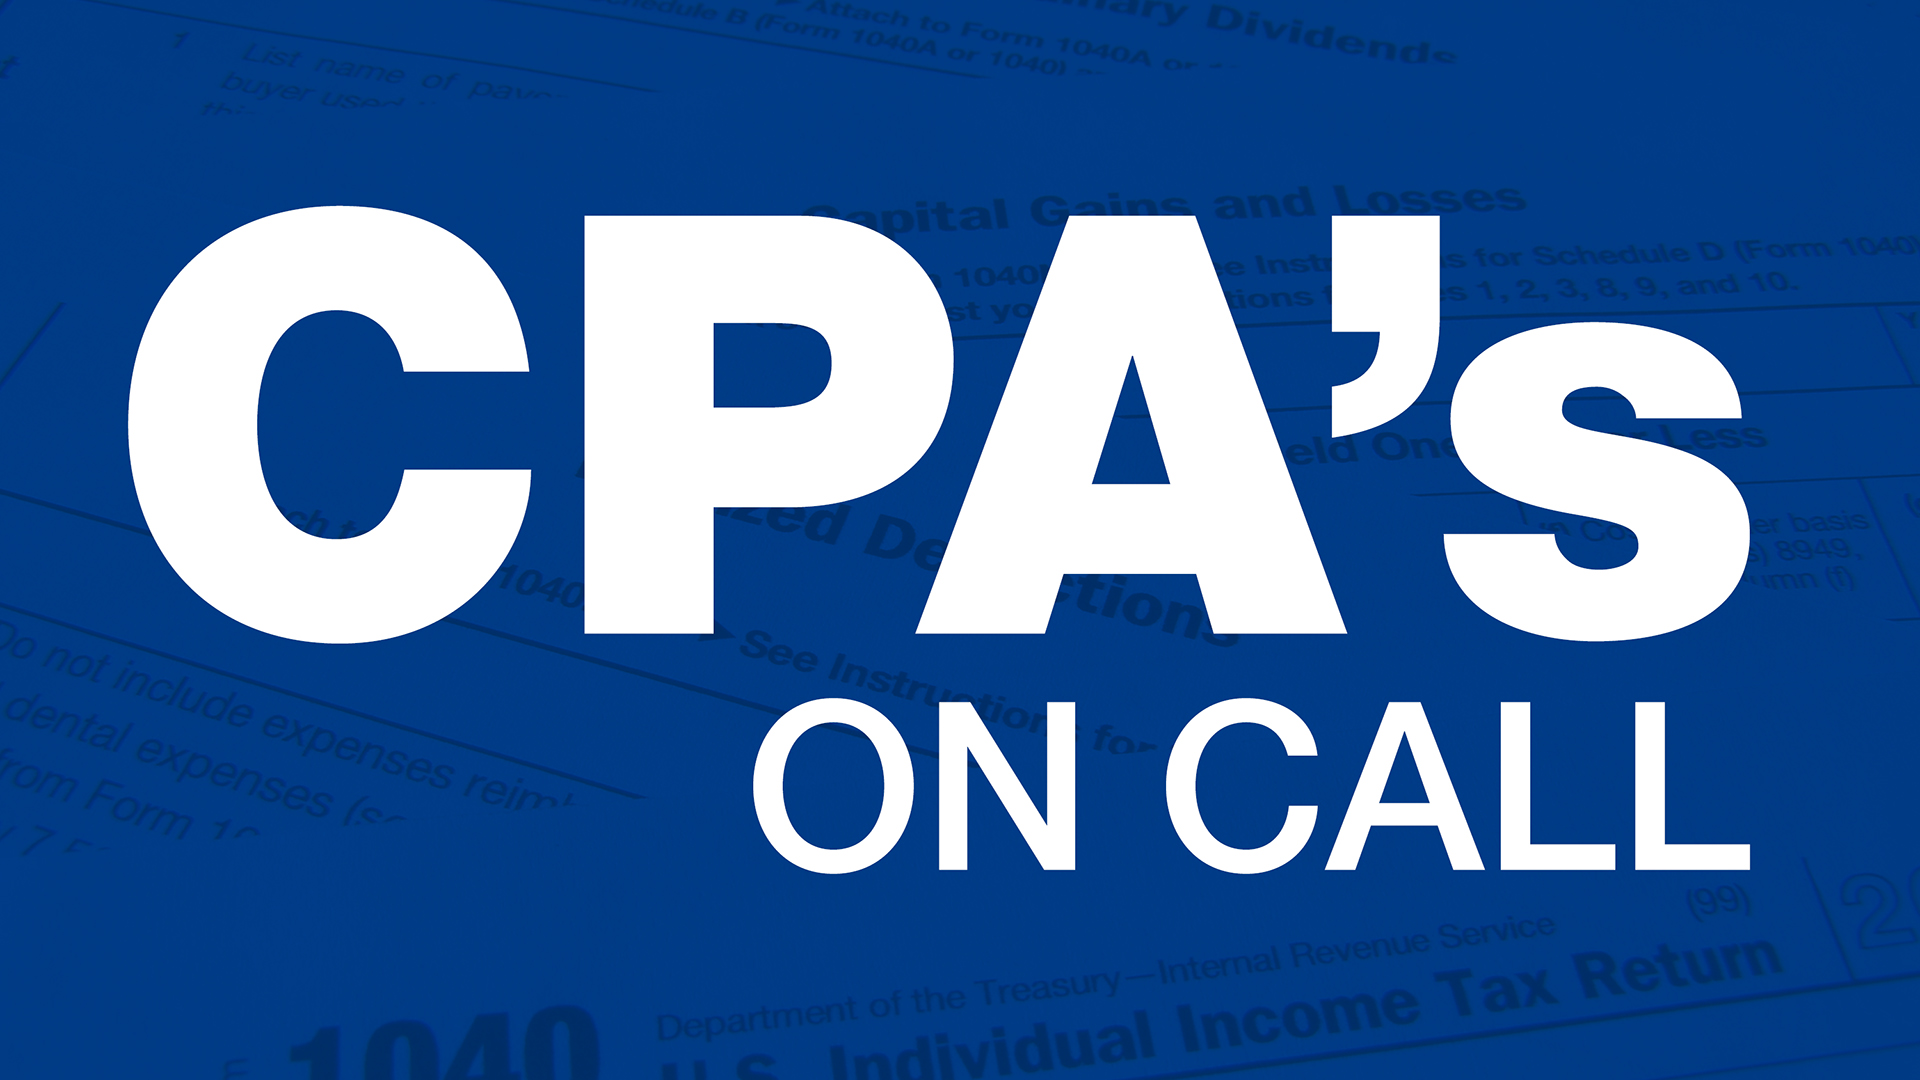 Tax Time: CPA's on Call